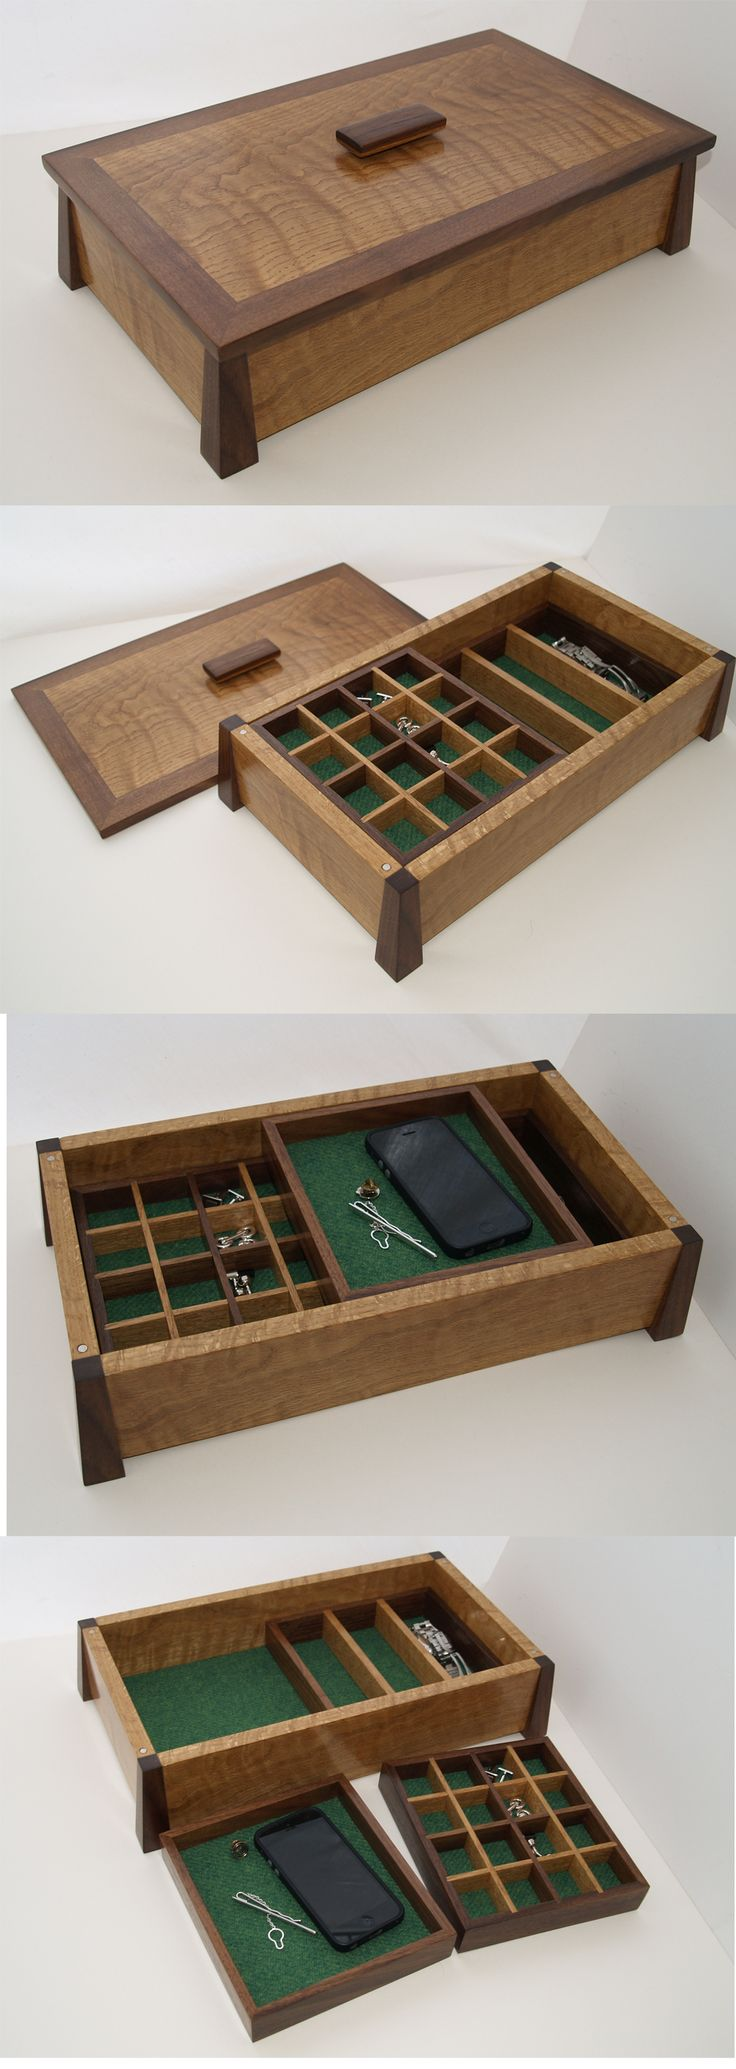 Fine wood box, hand crafted from rippled Oak and Black Walnut. Lined with Harris Tweed. Made by Chisel and Plane.